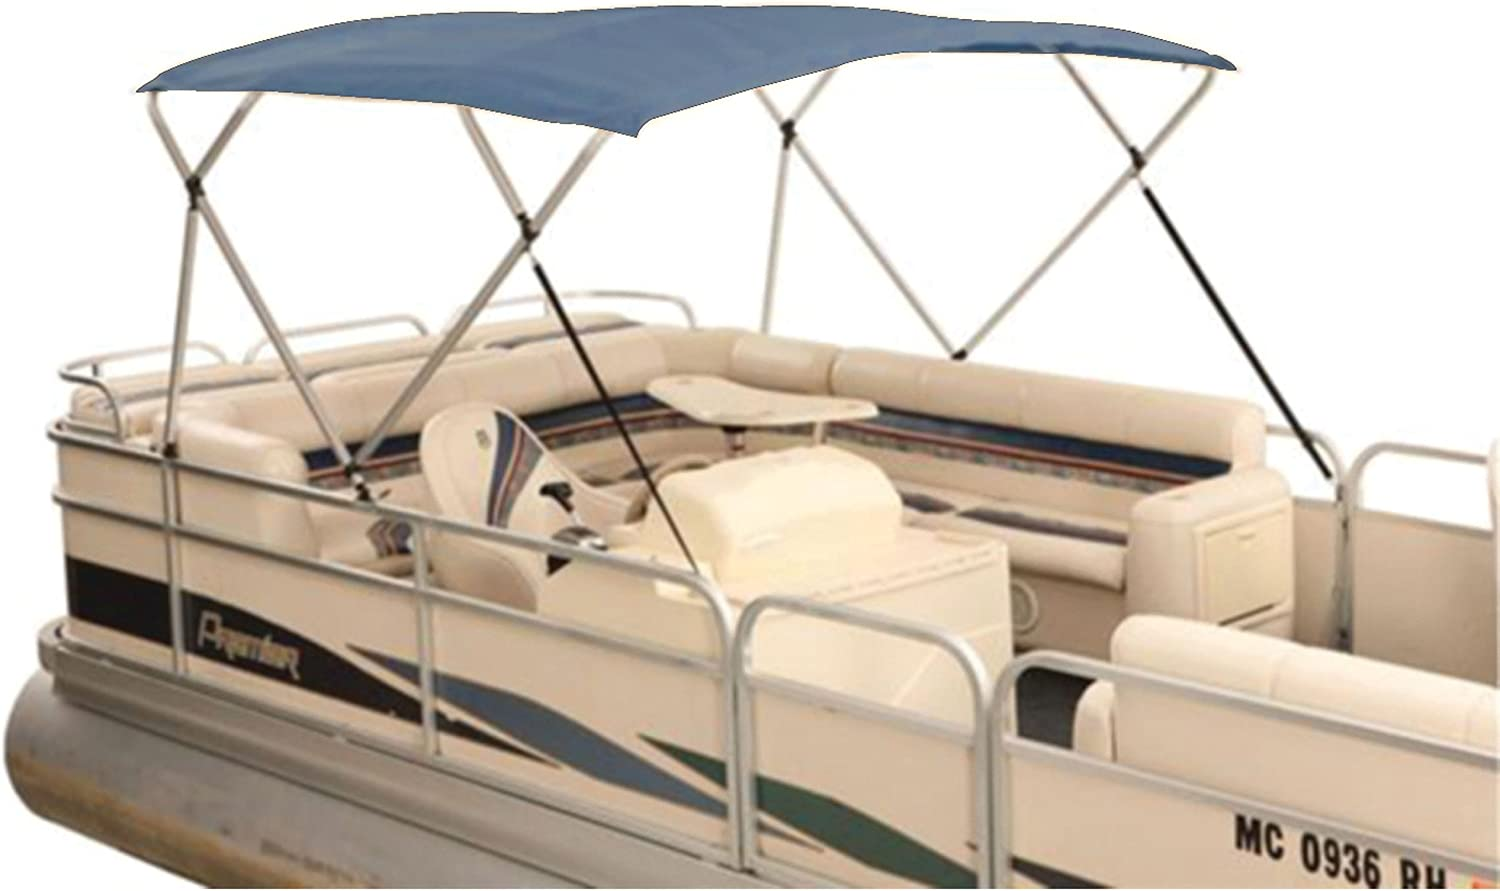 Attwood 381PGY Navy 8' x 10' Traditional Fabric Bimini Top